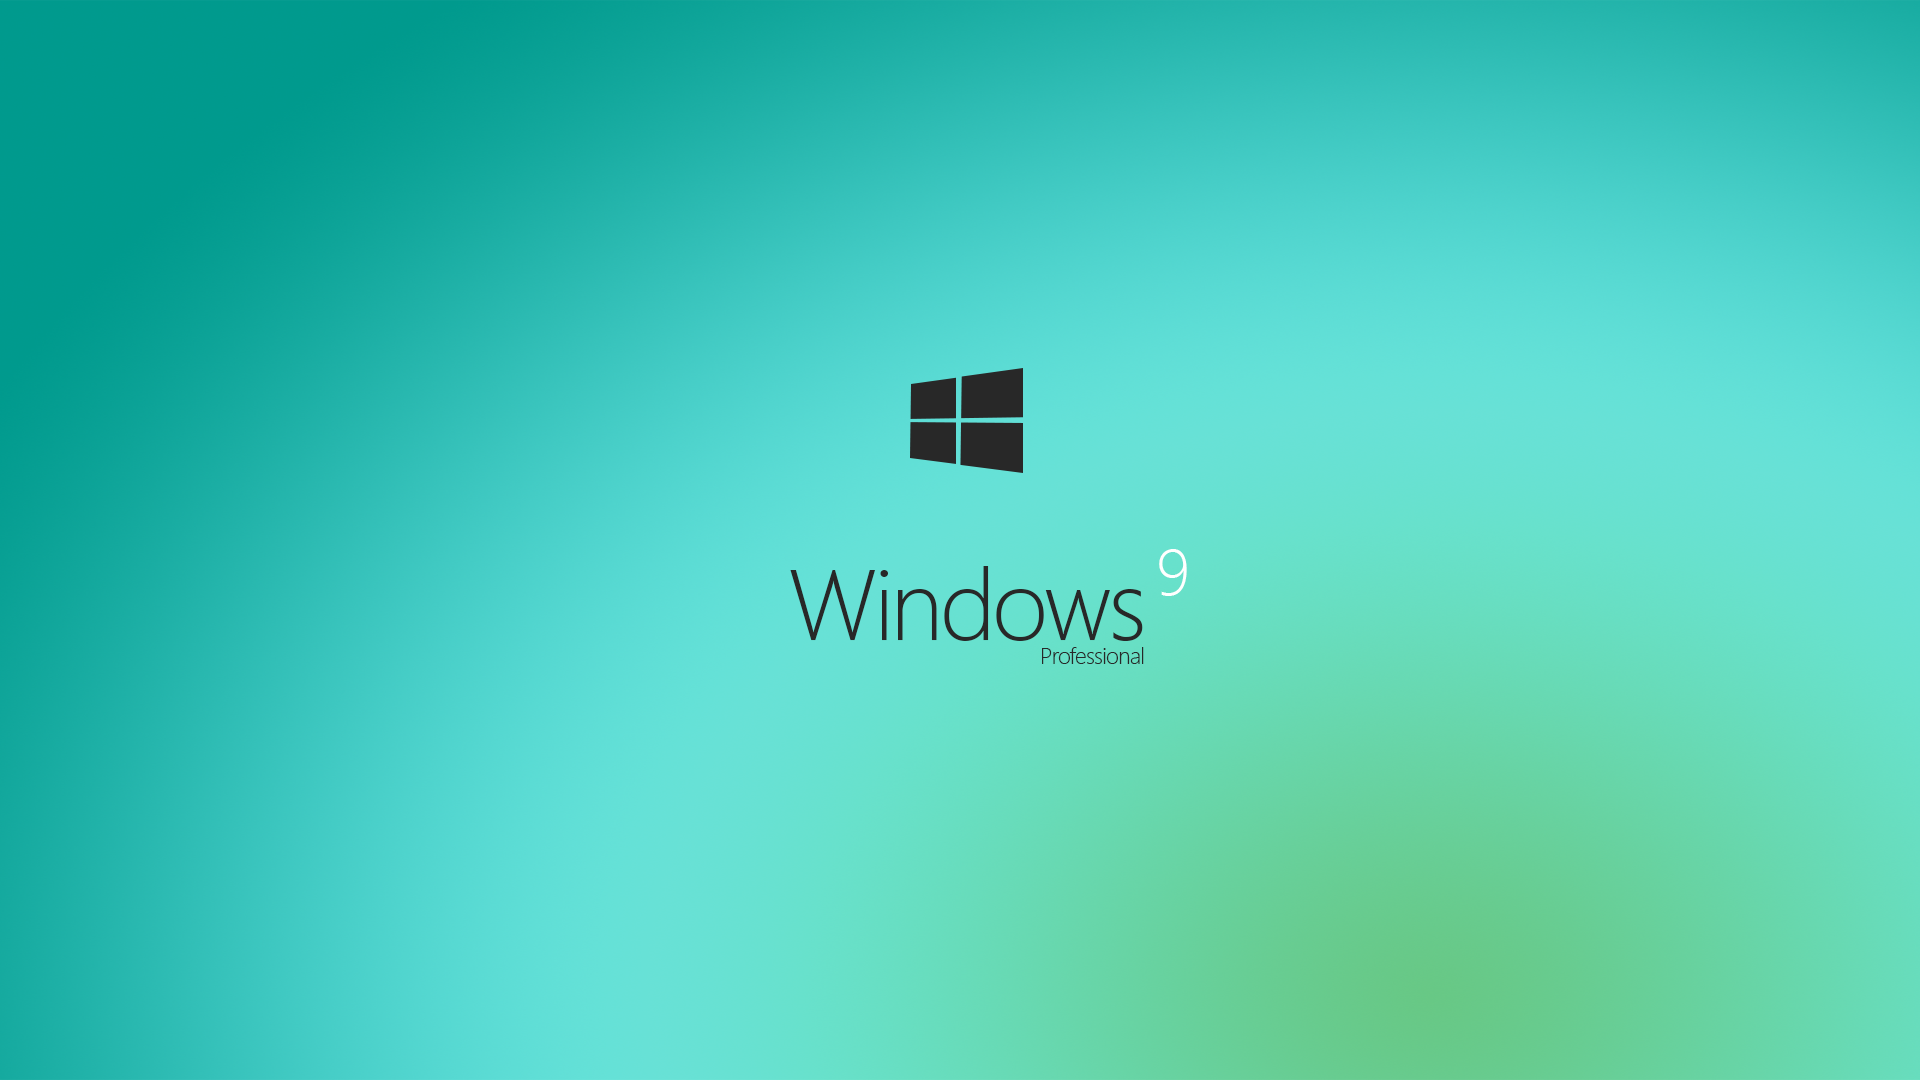 ... Windows 9 - Wallpaper HD Concept by danielskrzypon